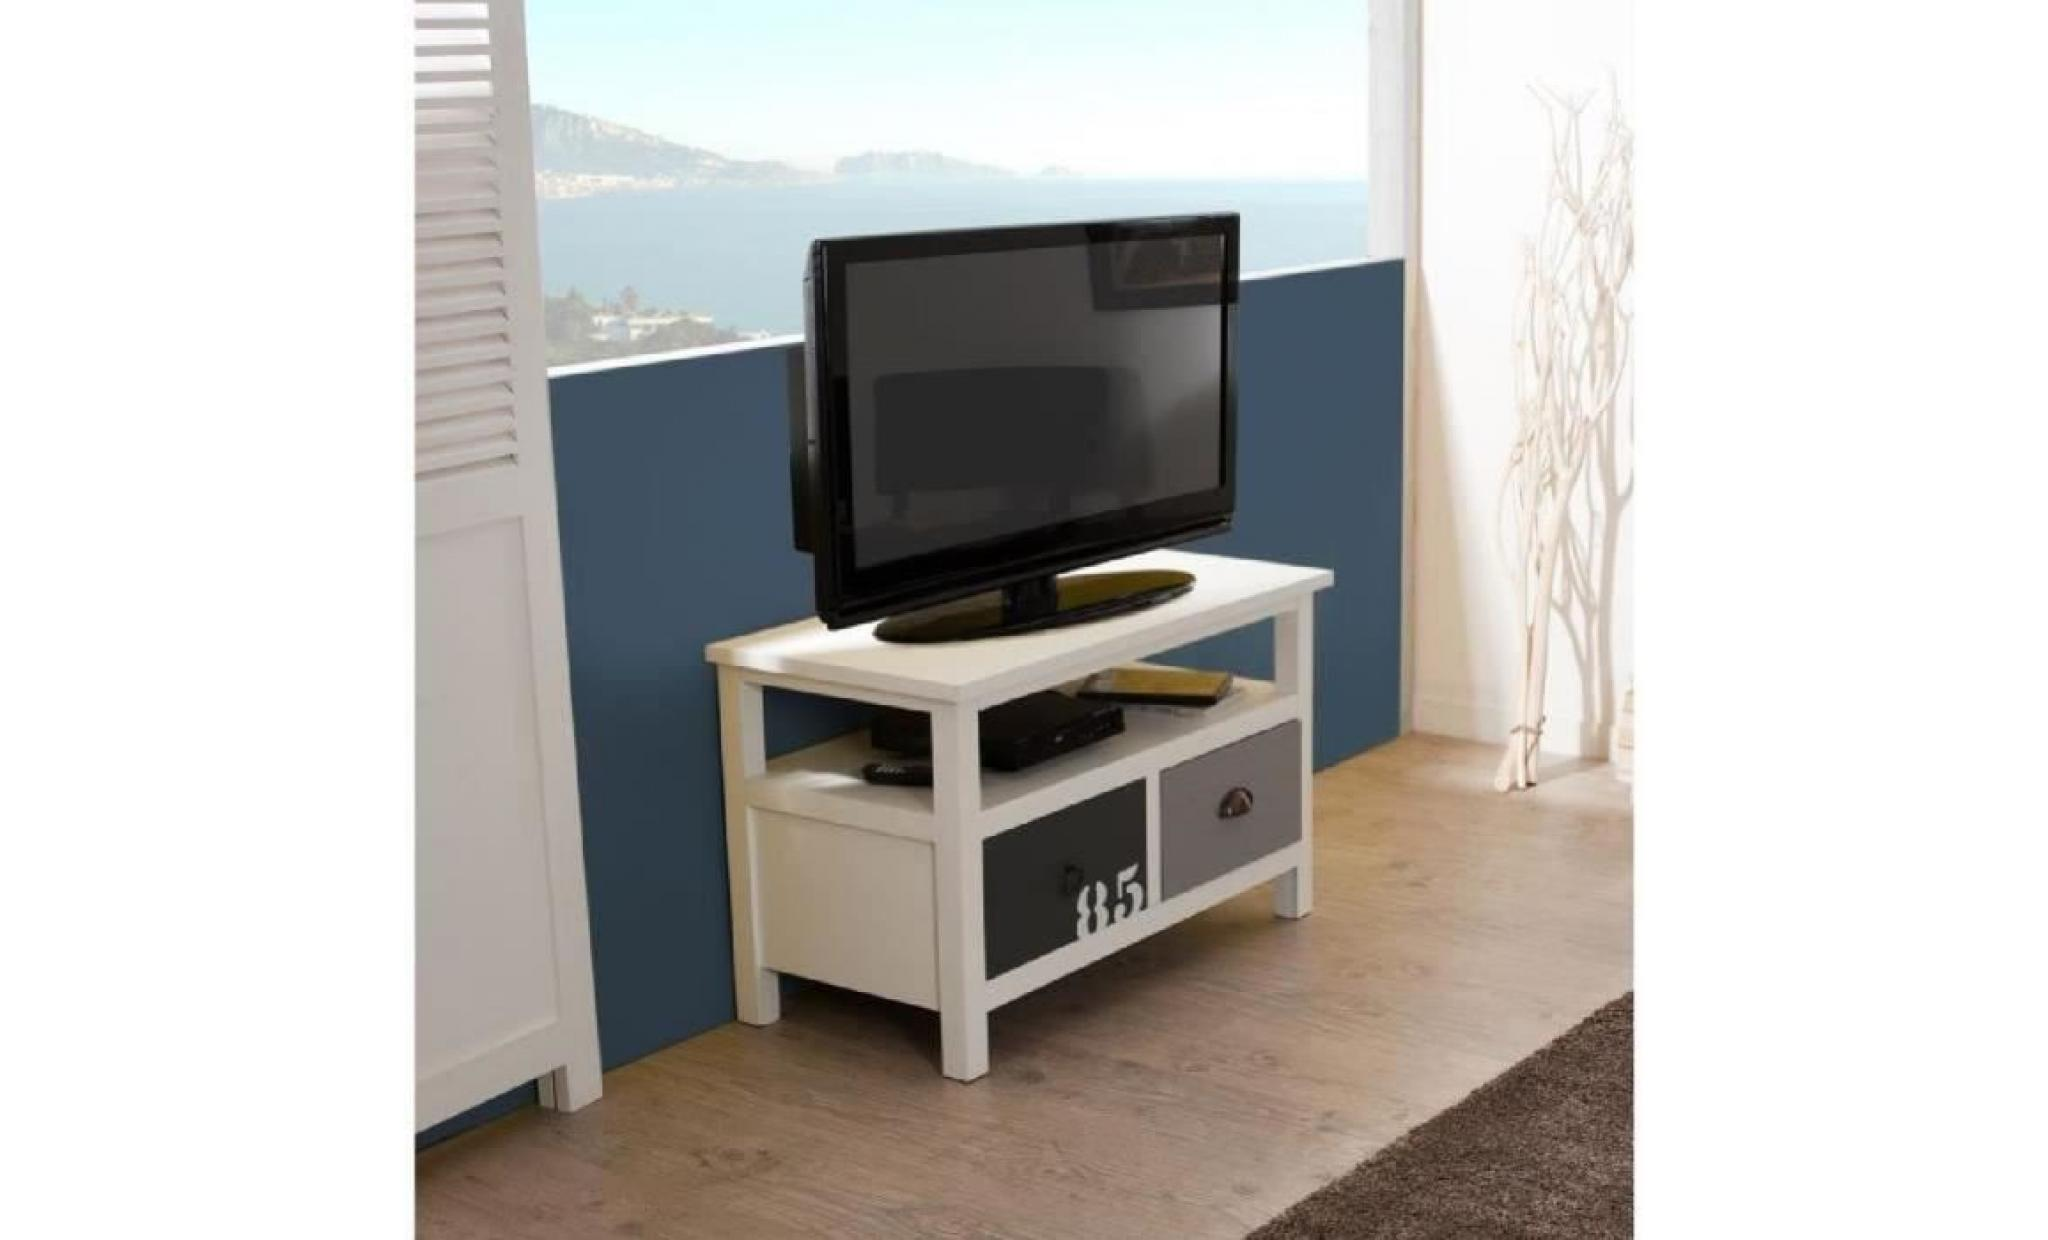 phuket meuble tv 2 tiroirs l80cm sapin mdf achat vente meuble tv pas cher couleur et. Black Bedroom Furniture Sets. Home Design Ideas